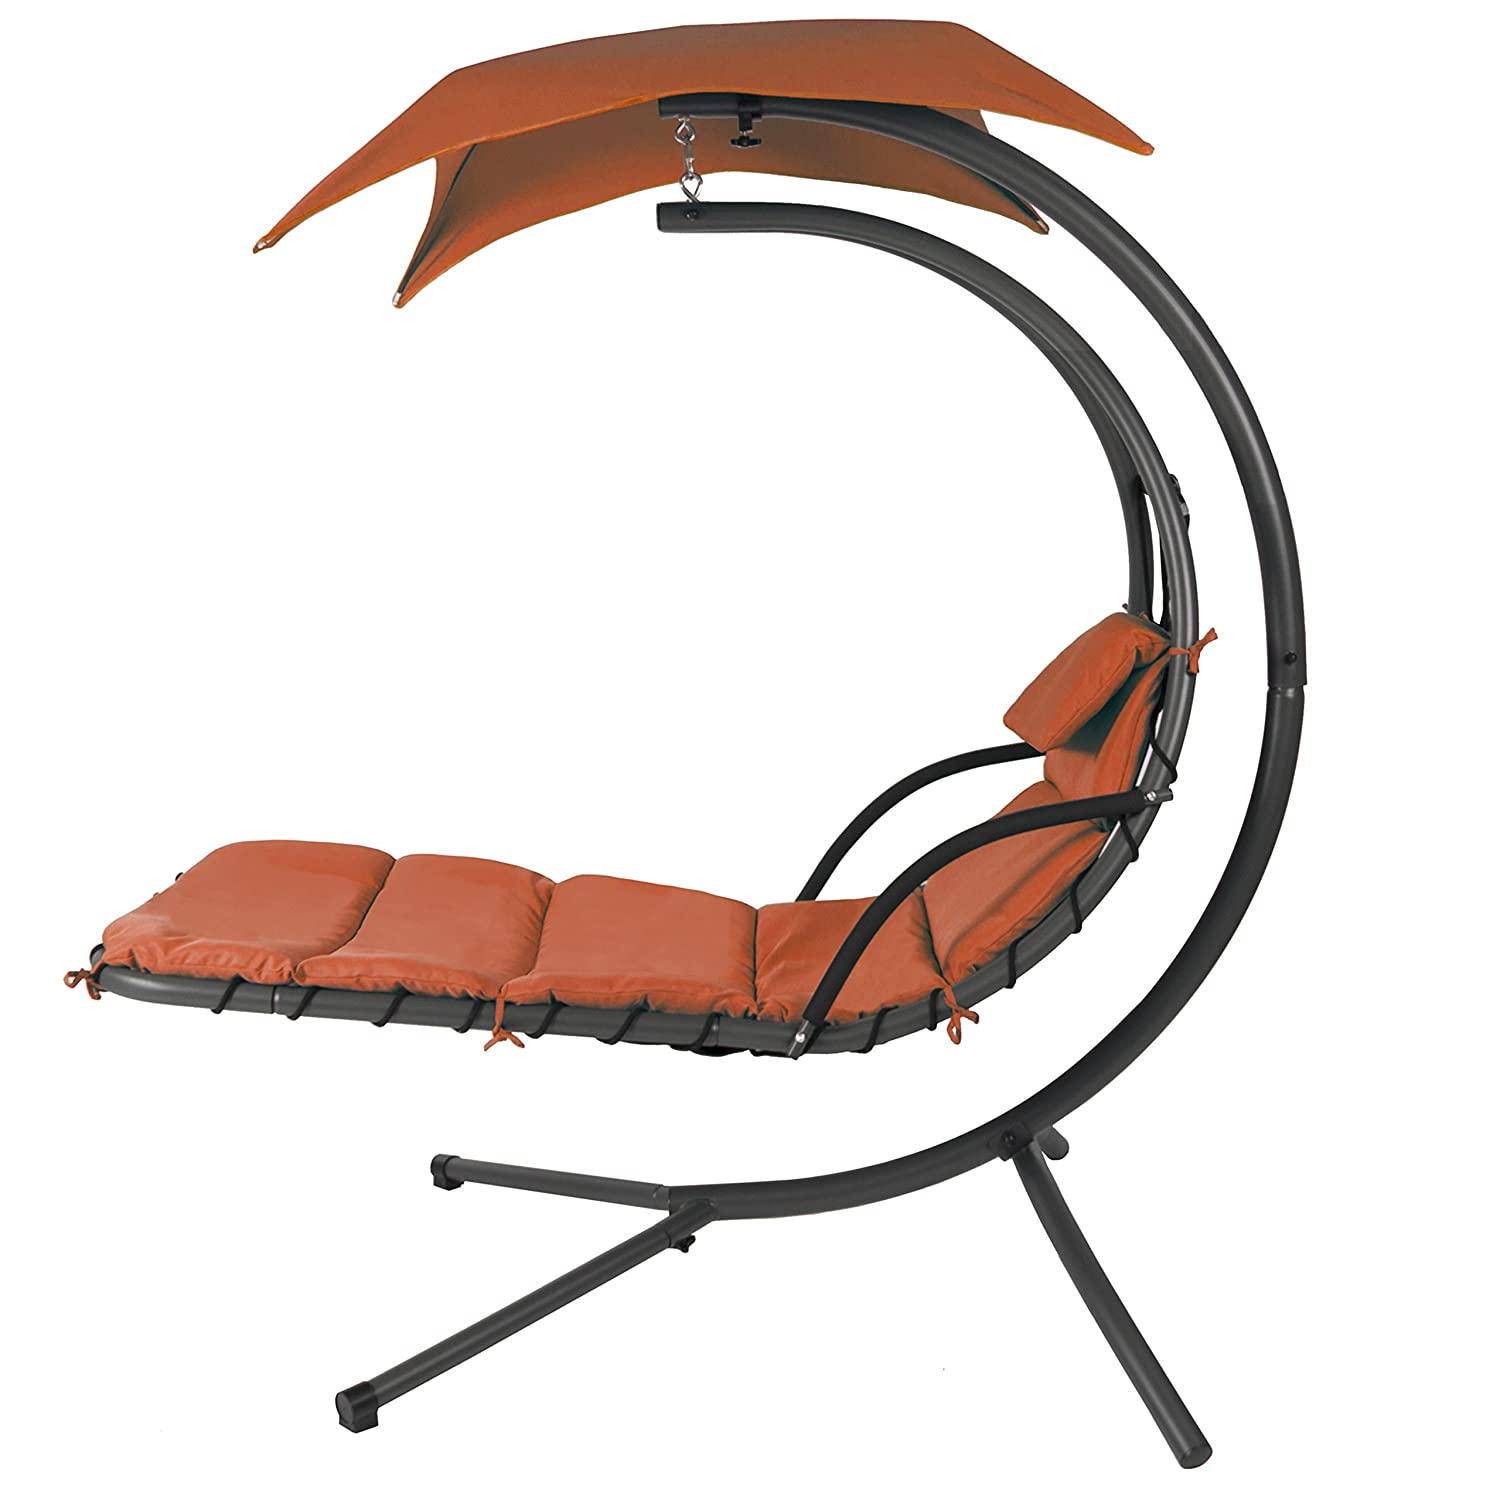 Bon Amazon.com : Best Choice Products Orange Color Handing Chair : Garden U0026  Outdoor